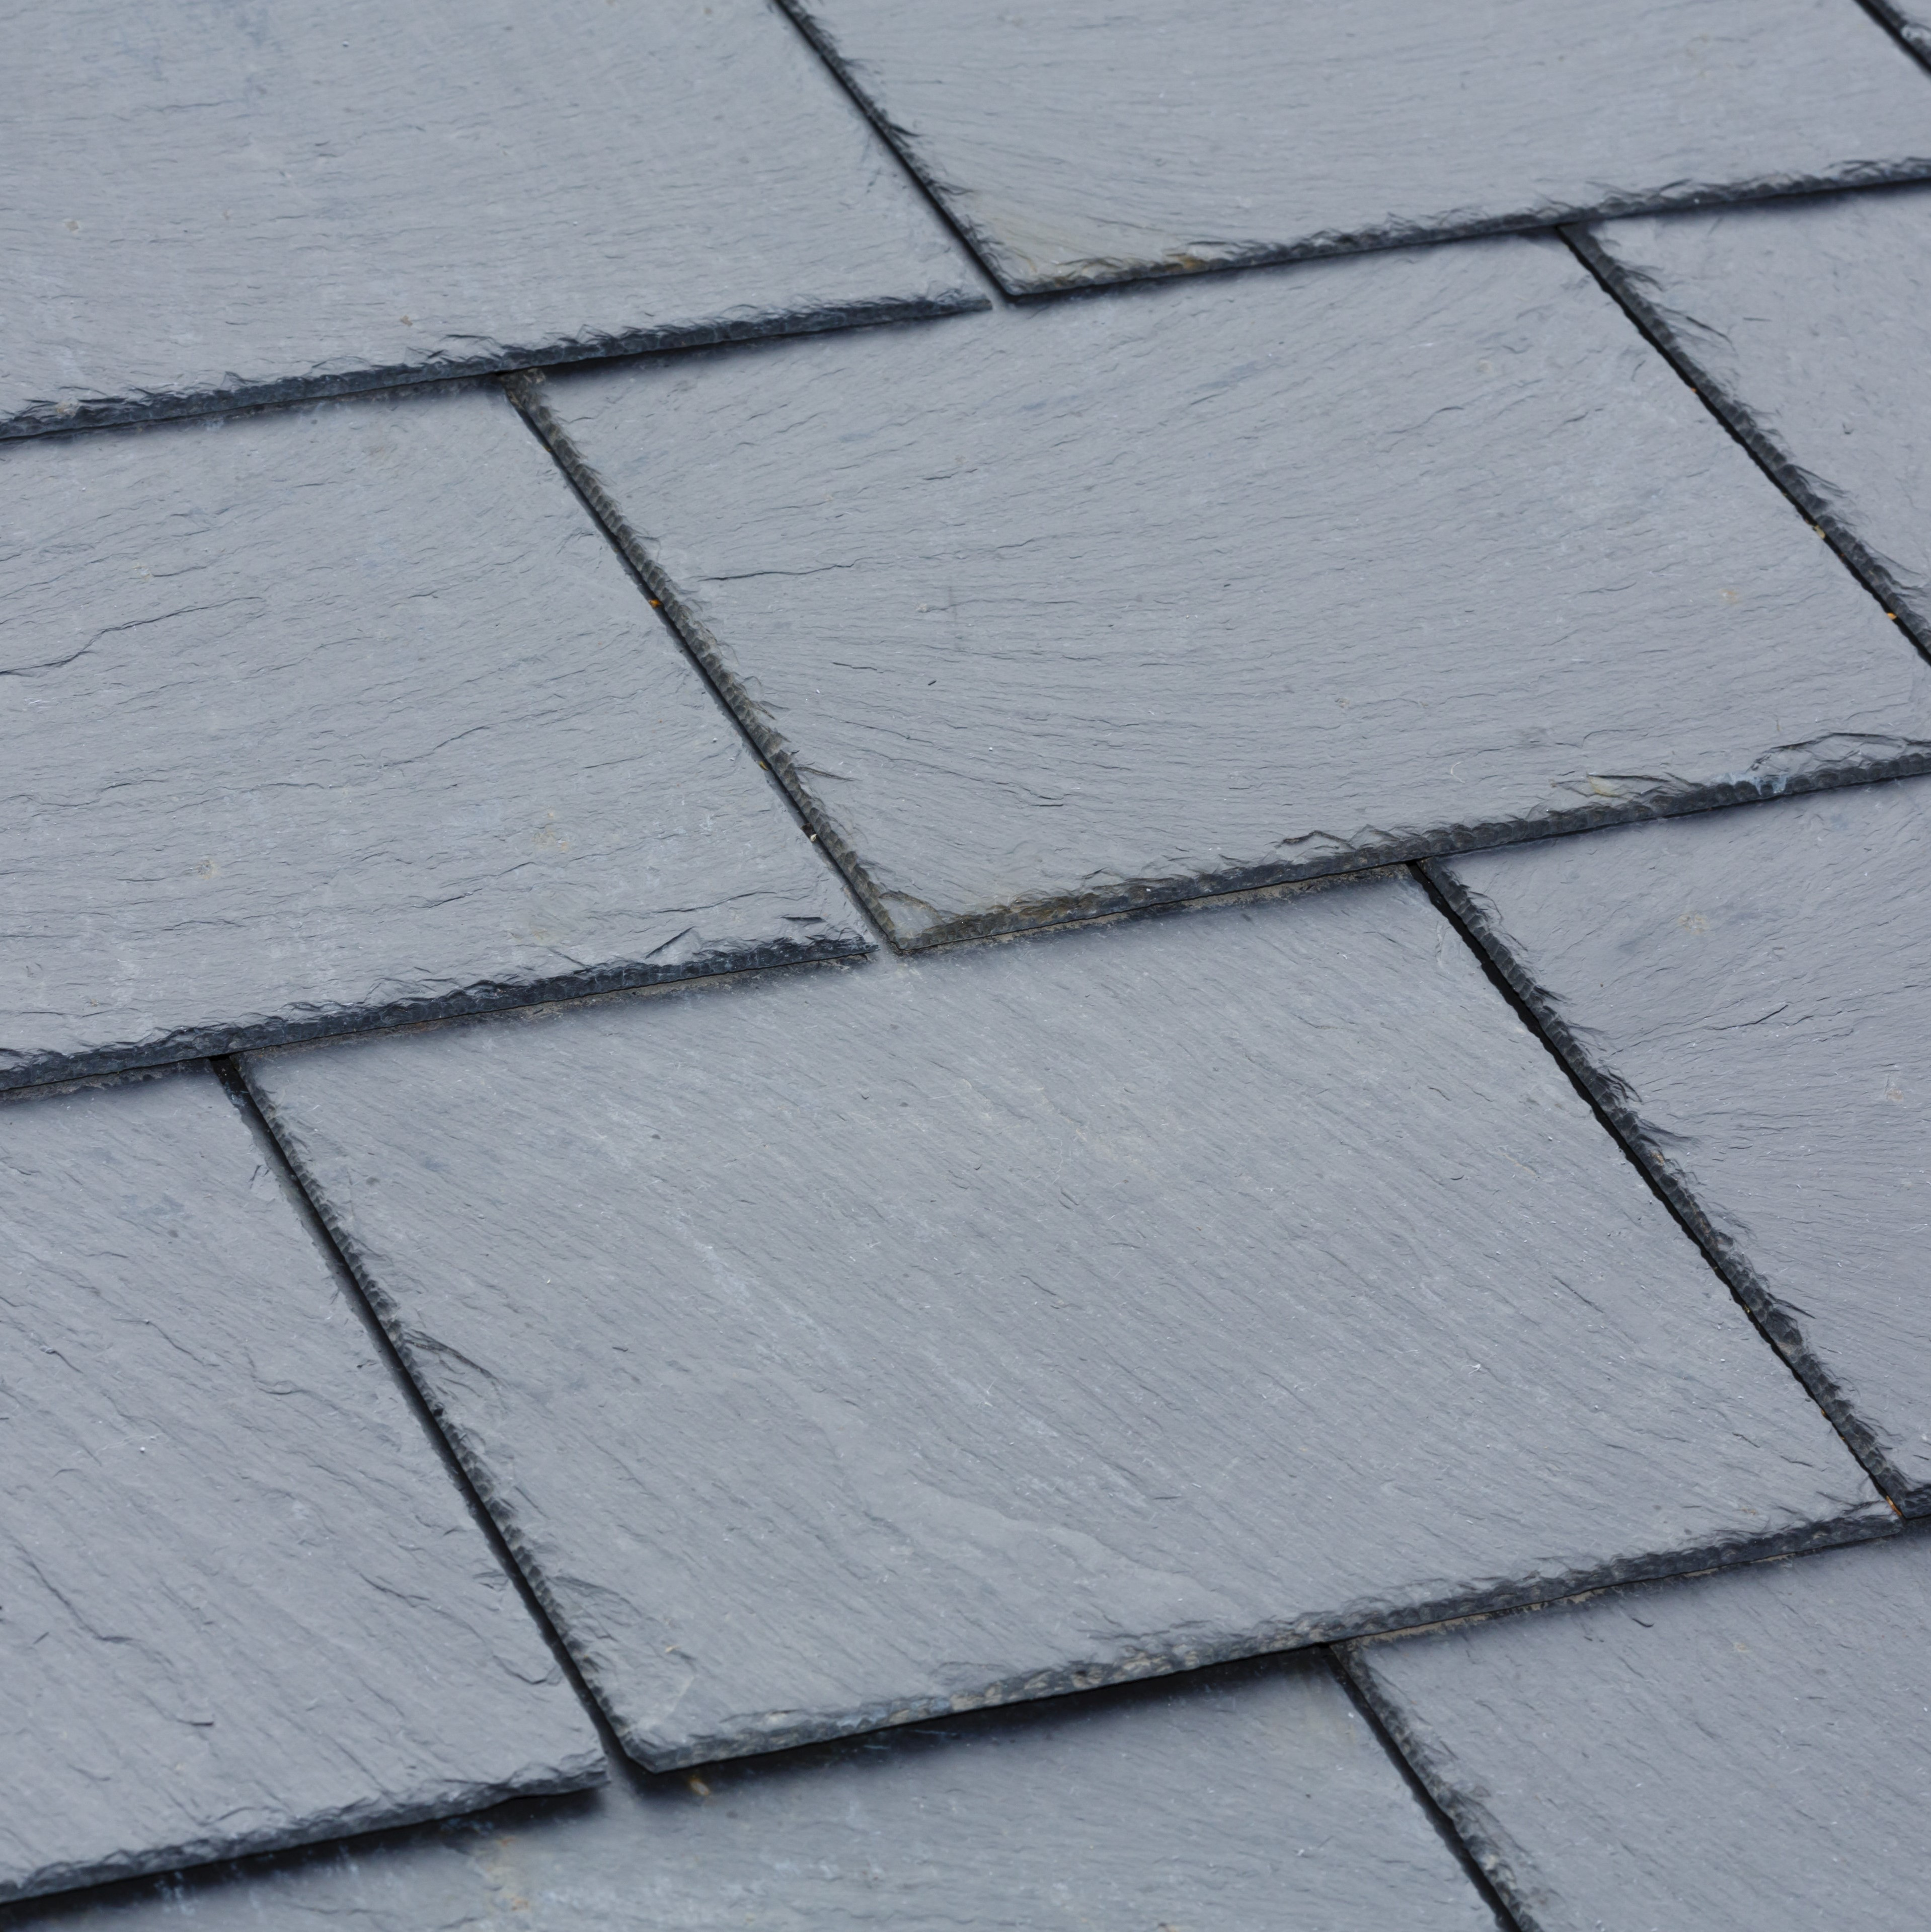 Slate roofing on a residential roof.